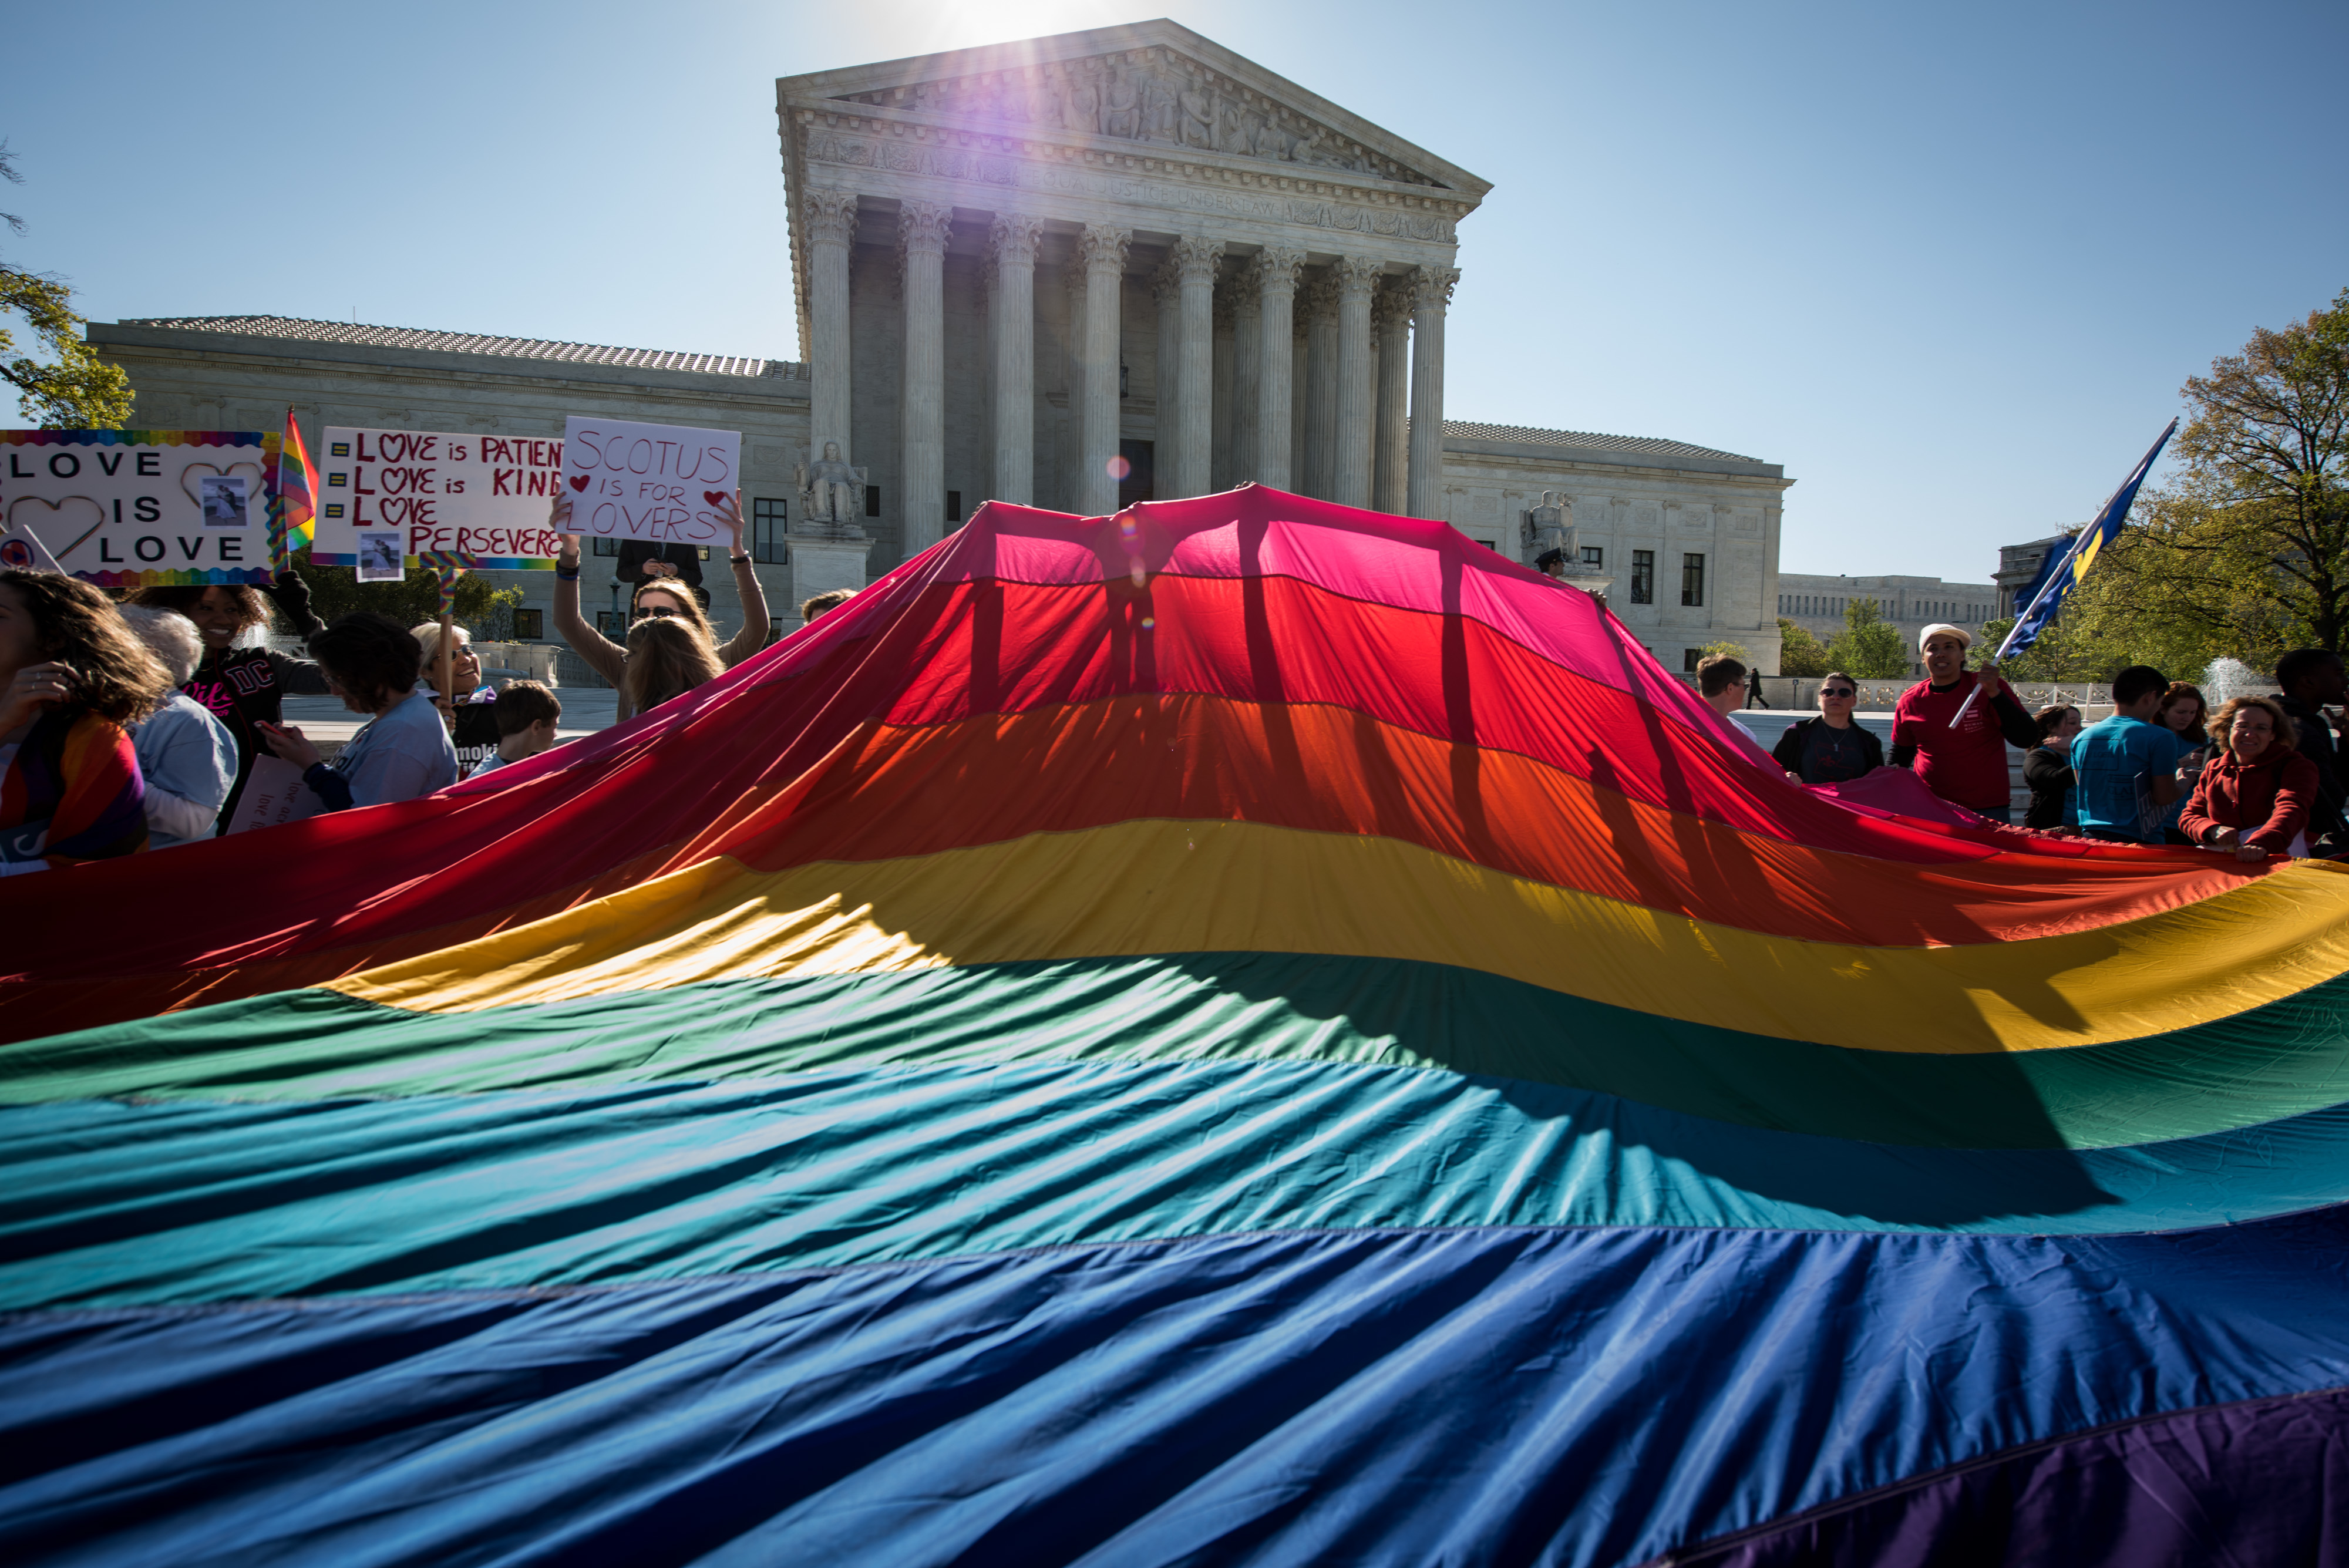 Supreme Court hears oral arguments on Same-sex marriage